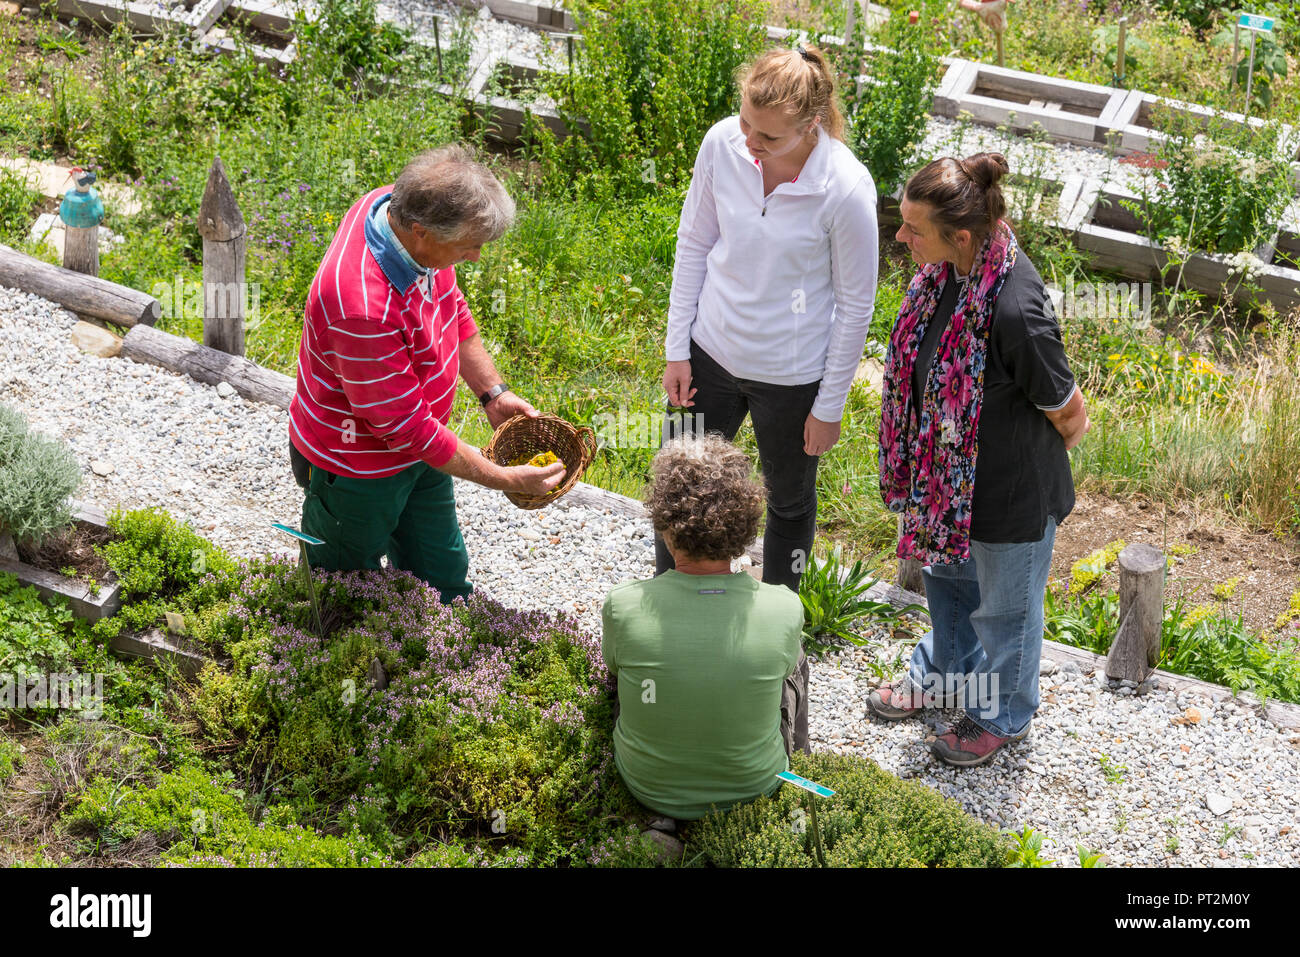 Switzerland, canton Valais, district Leuk, Albinen, medicinal plant garden, book author and herbal expert Thomas Pfister, medicinal herb school, herbal walk, medicinal herbs, herbal class, man explaining the herbs to a group of people - Stock Image